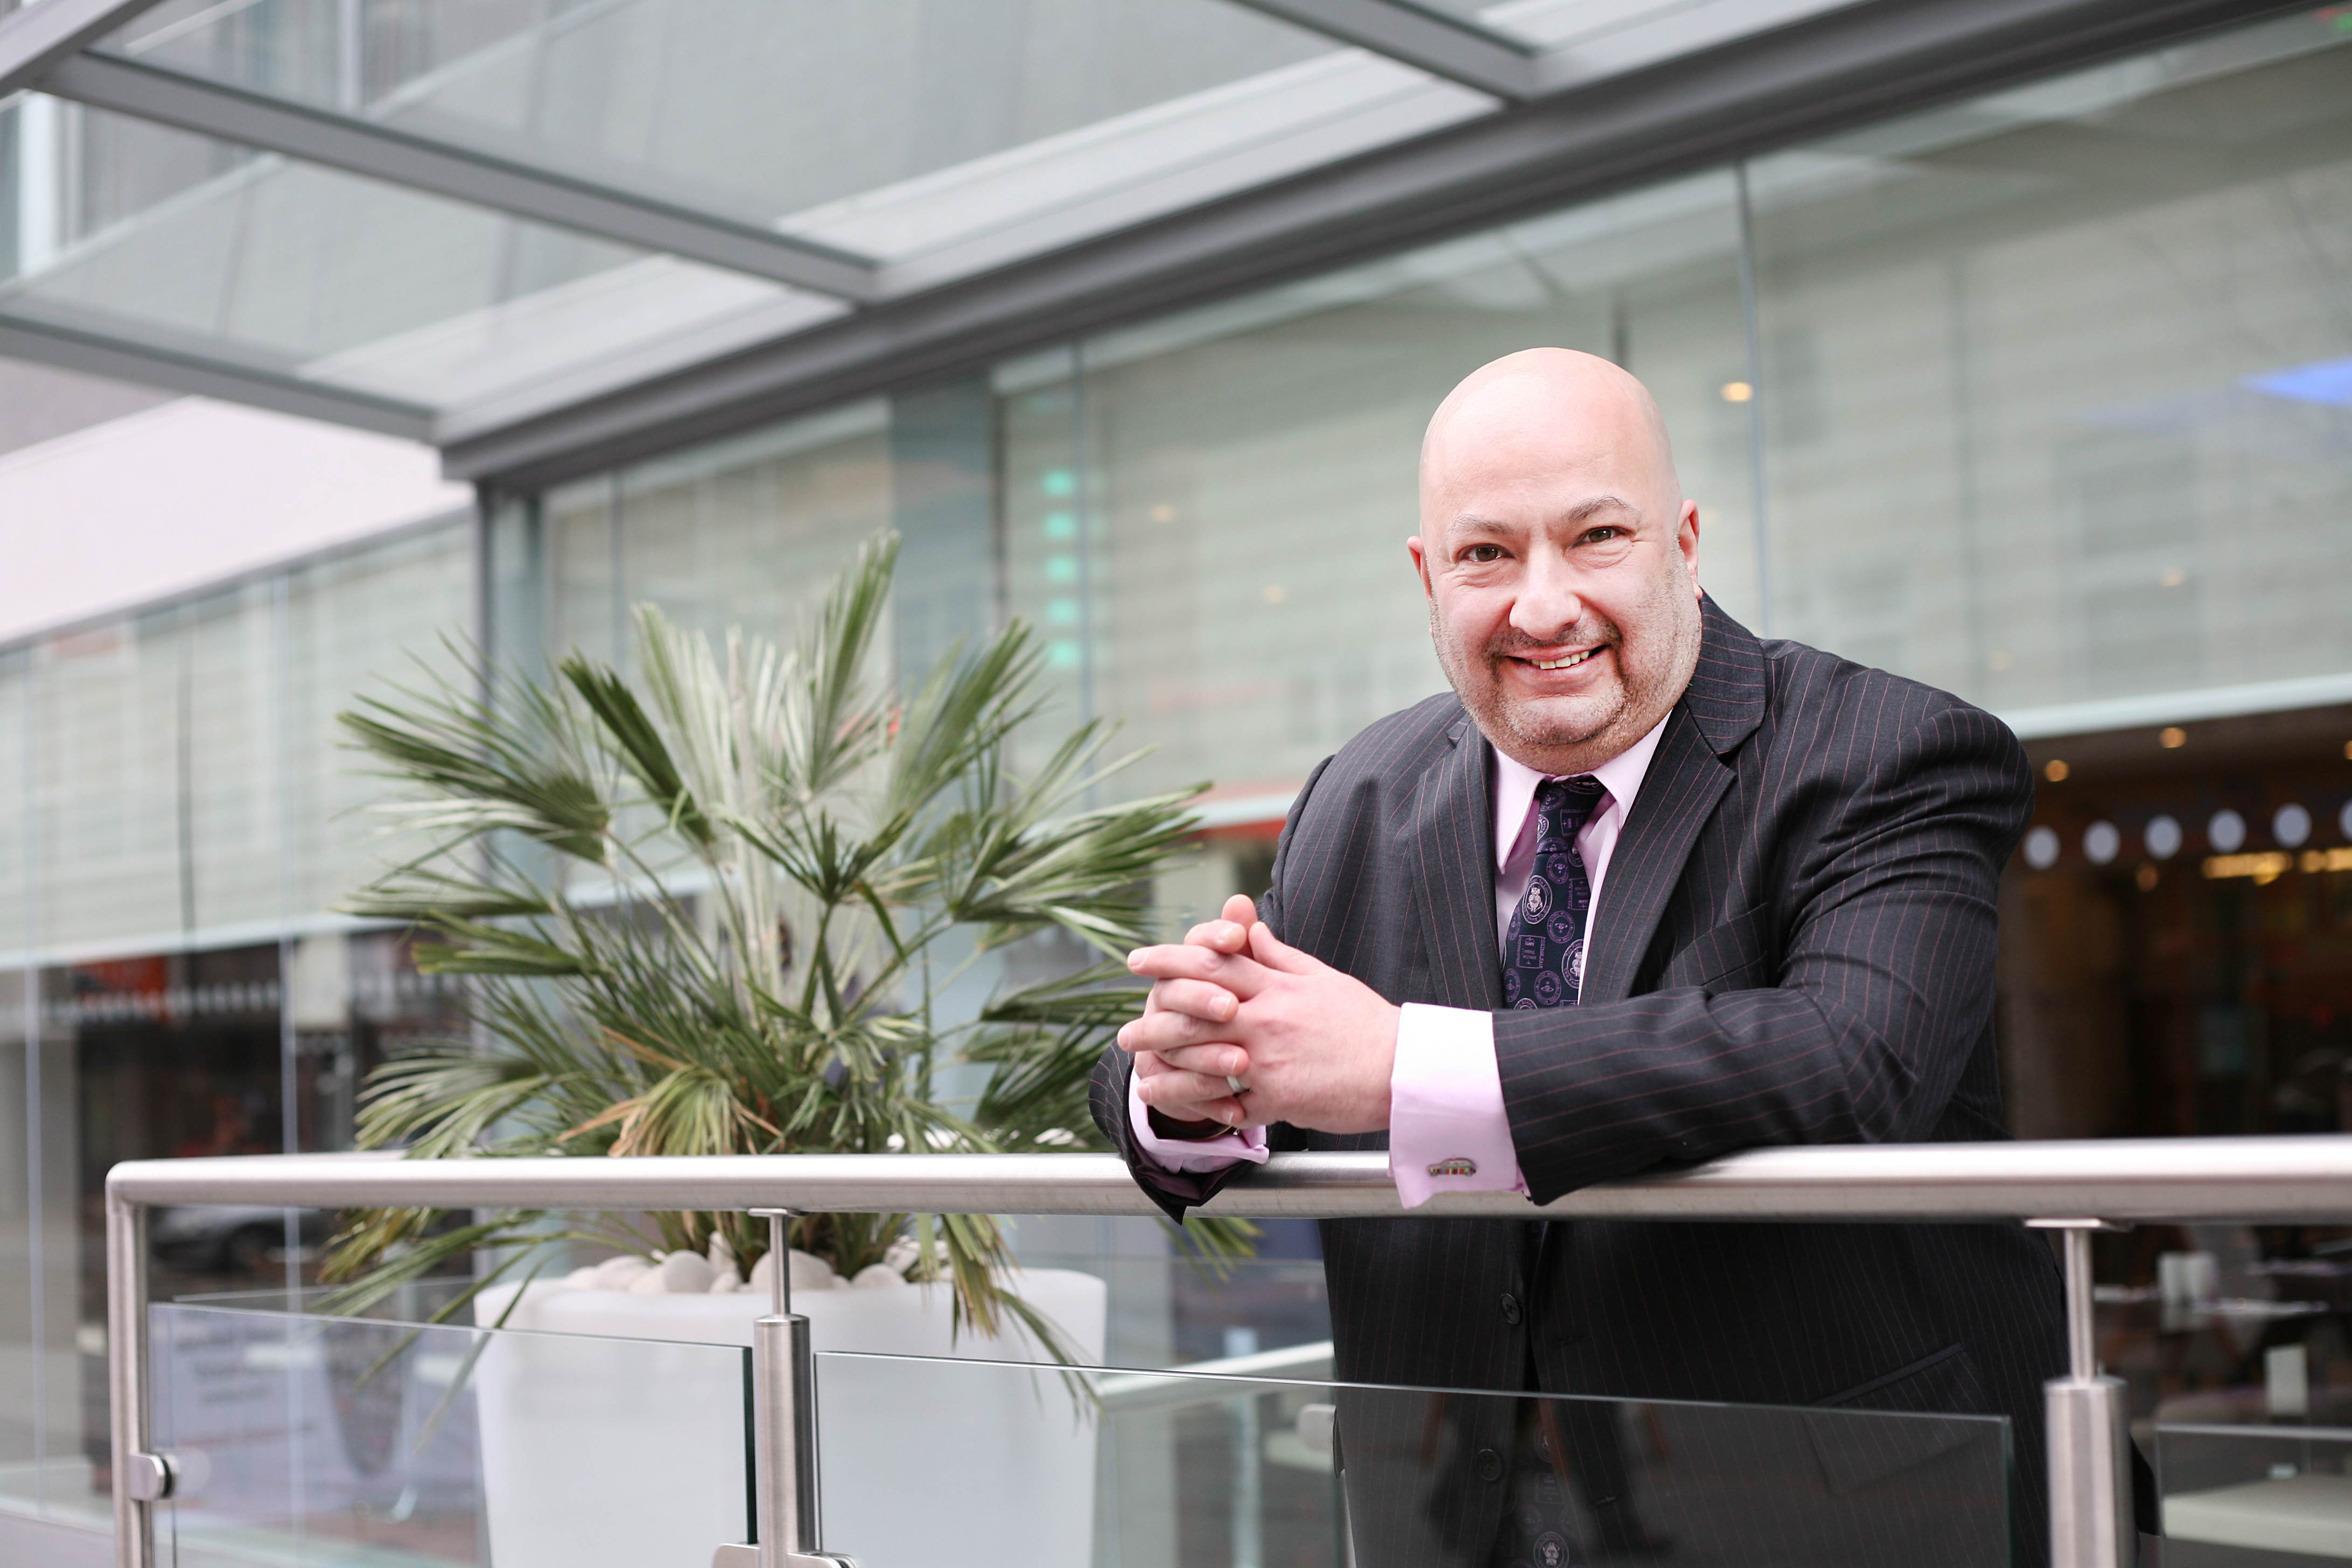 Businesses urged to play part in simplifying UK tax system